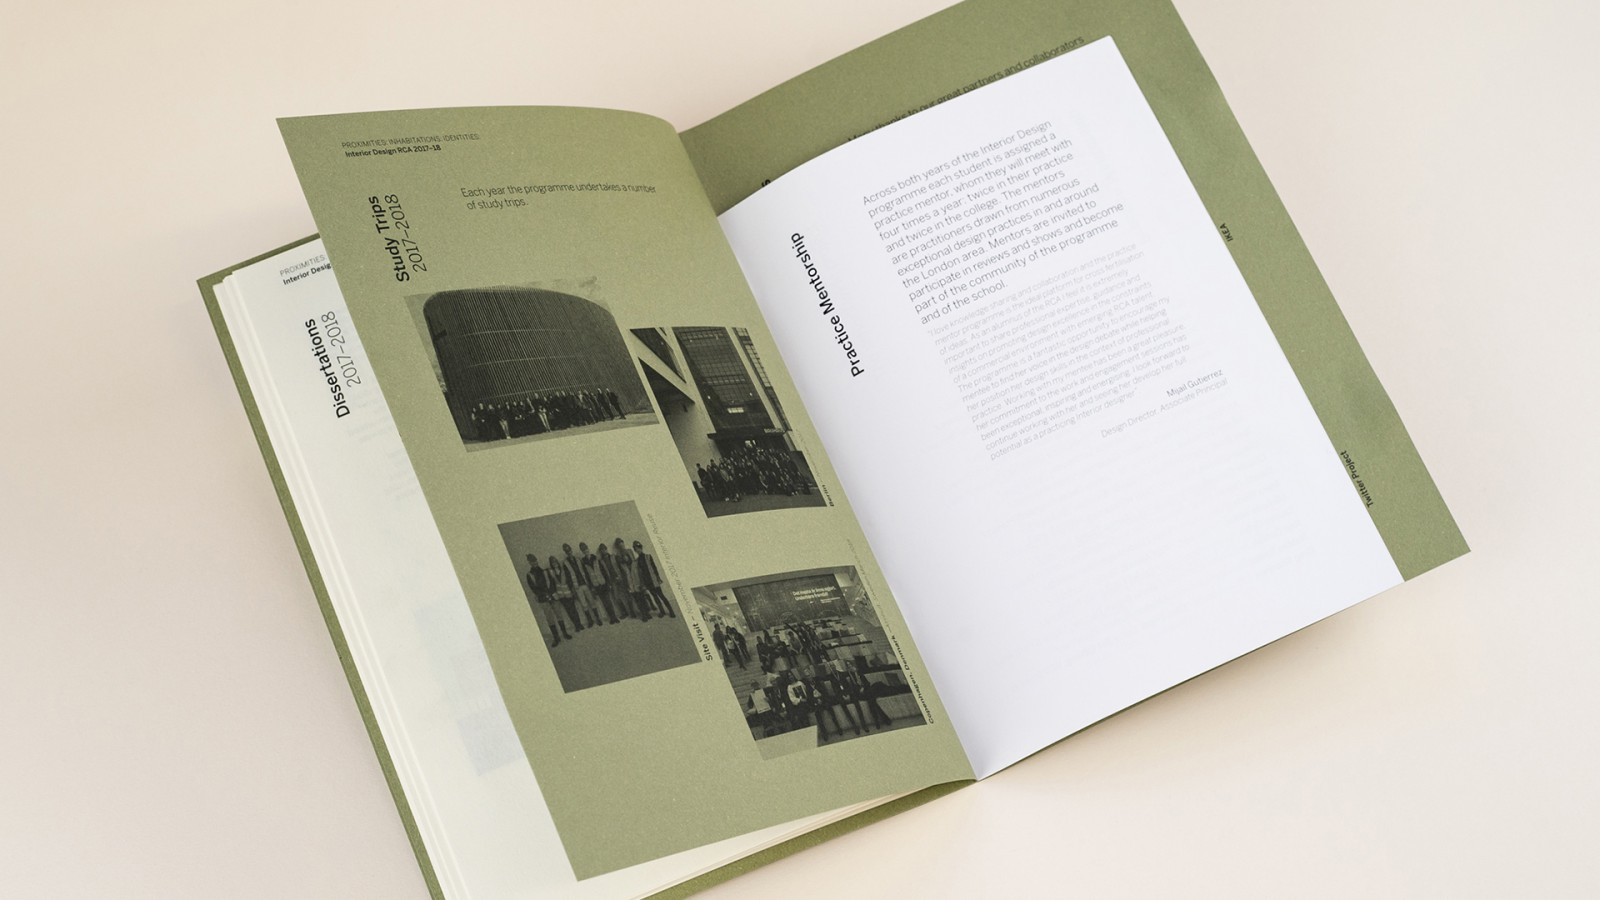 Gallery image for Royal College of Art project